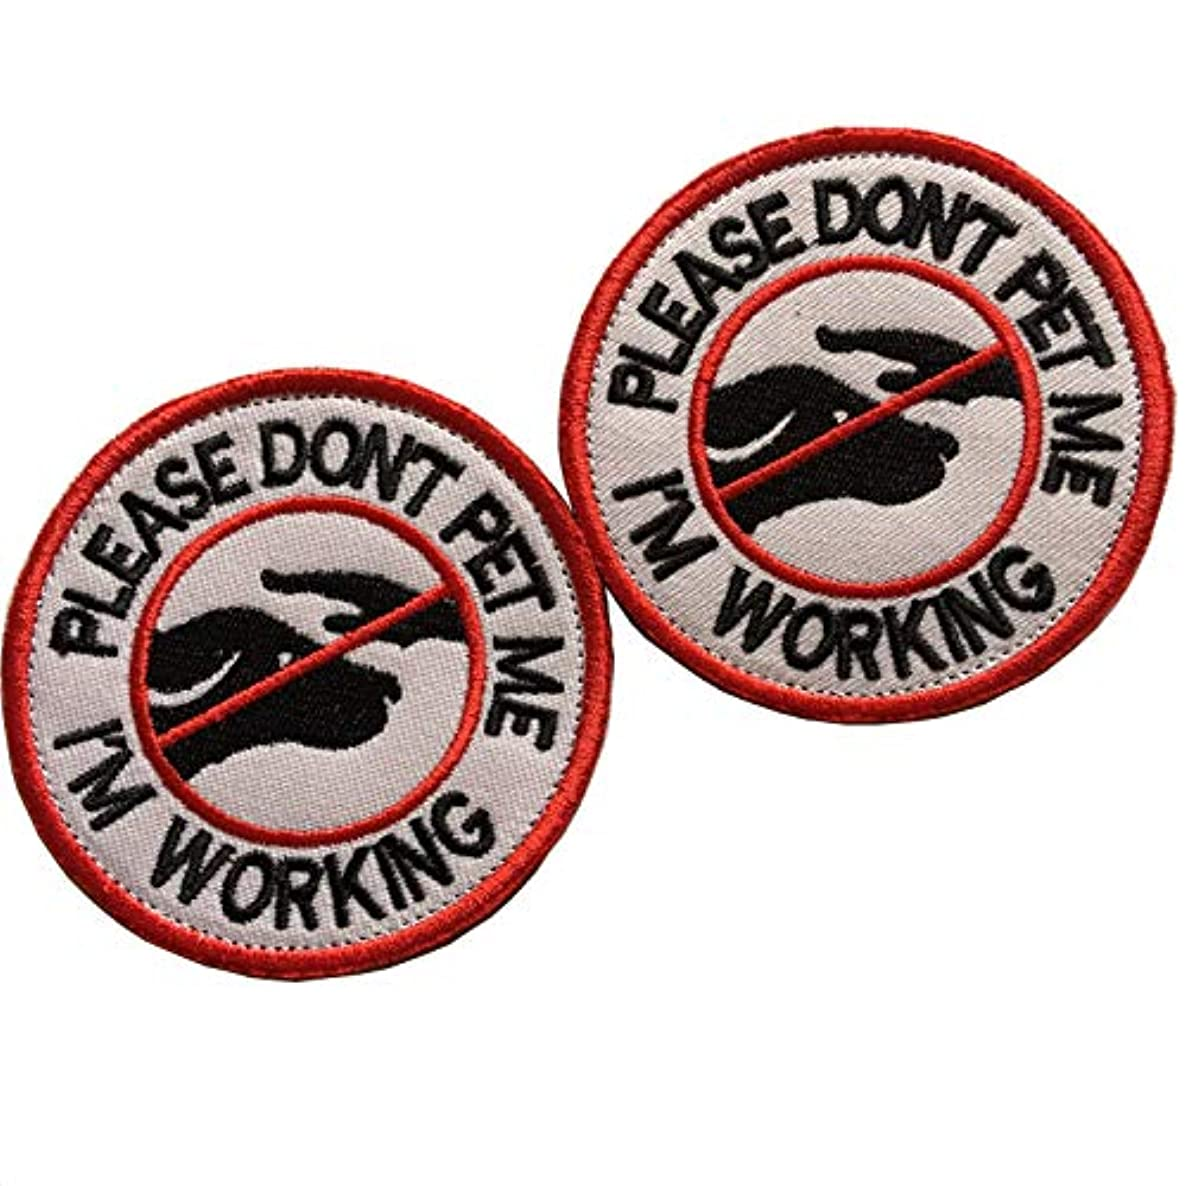 Service Dog in Training Do Not Touch, Please Don't Pet Me Working Dog Patches Emblem Embroidered Fastener Hook & Loop Tactical Patches Appliques for Harnesses Vests (A-Bundle 2 pcs Don't pet)